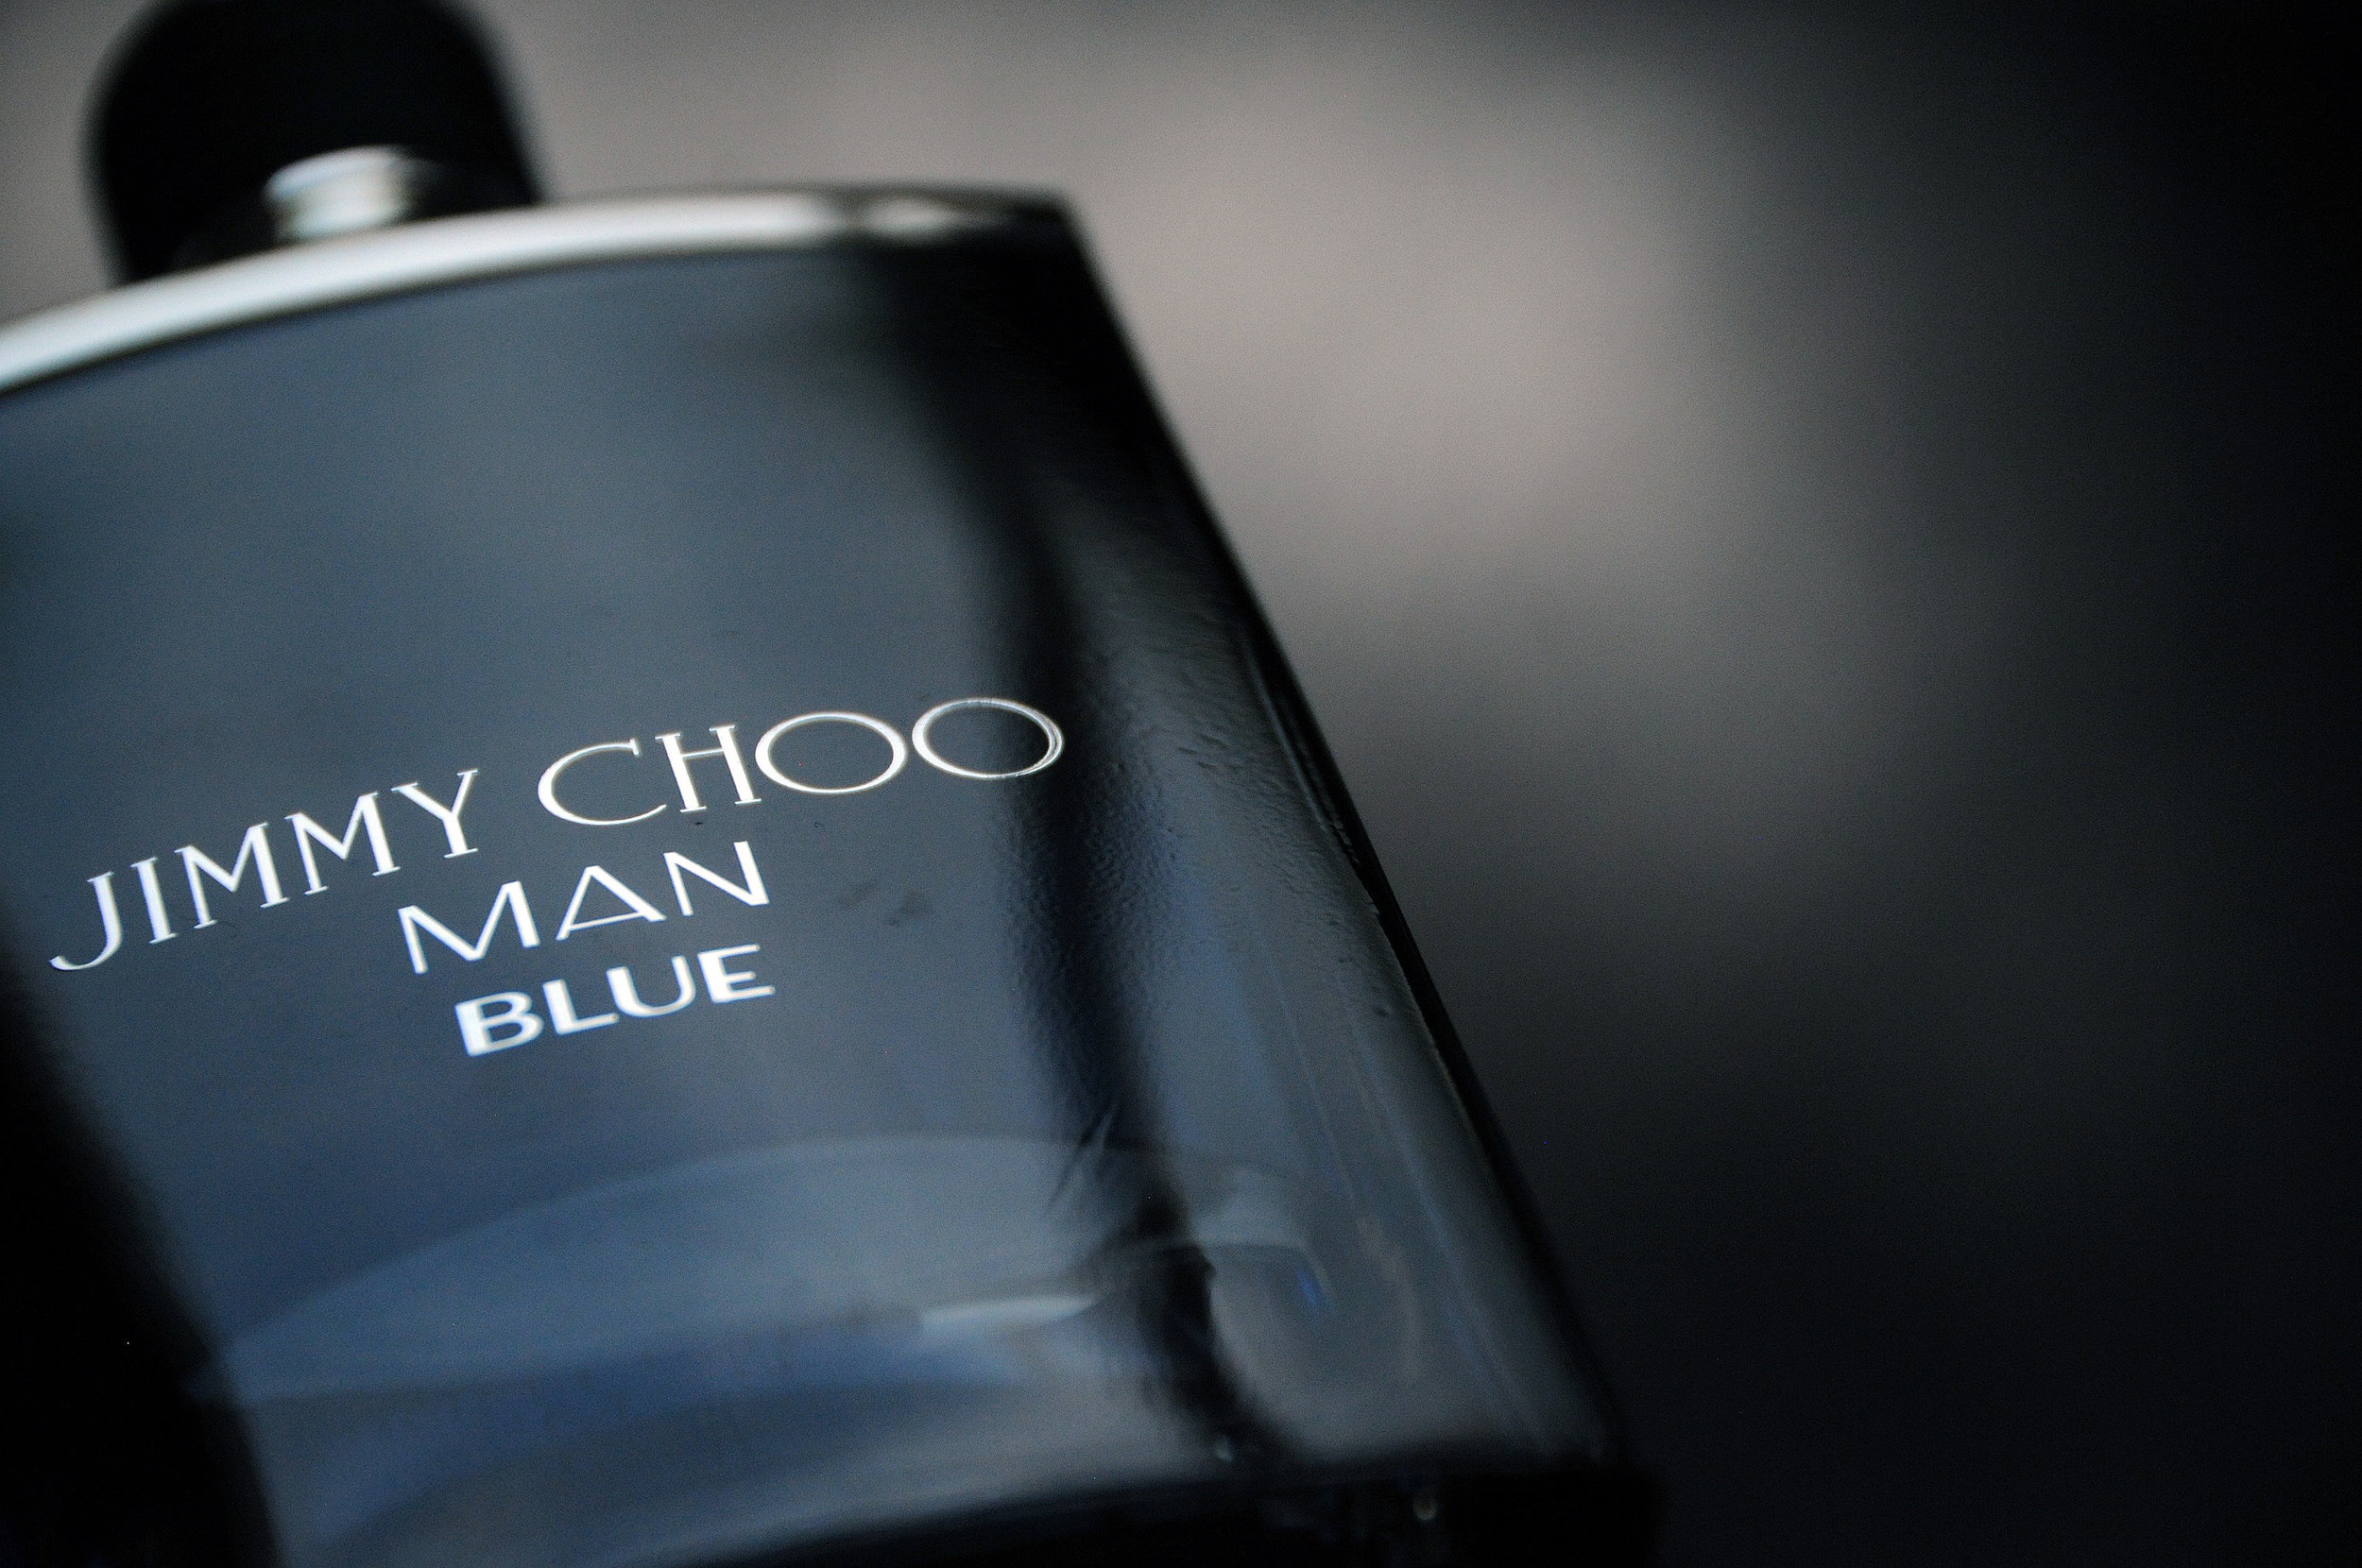 Jimmy Choo Man Blue Fragrance 2.jpg